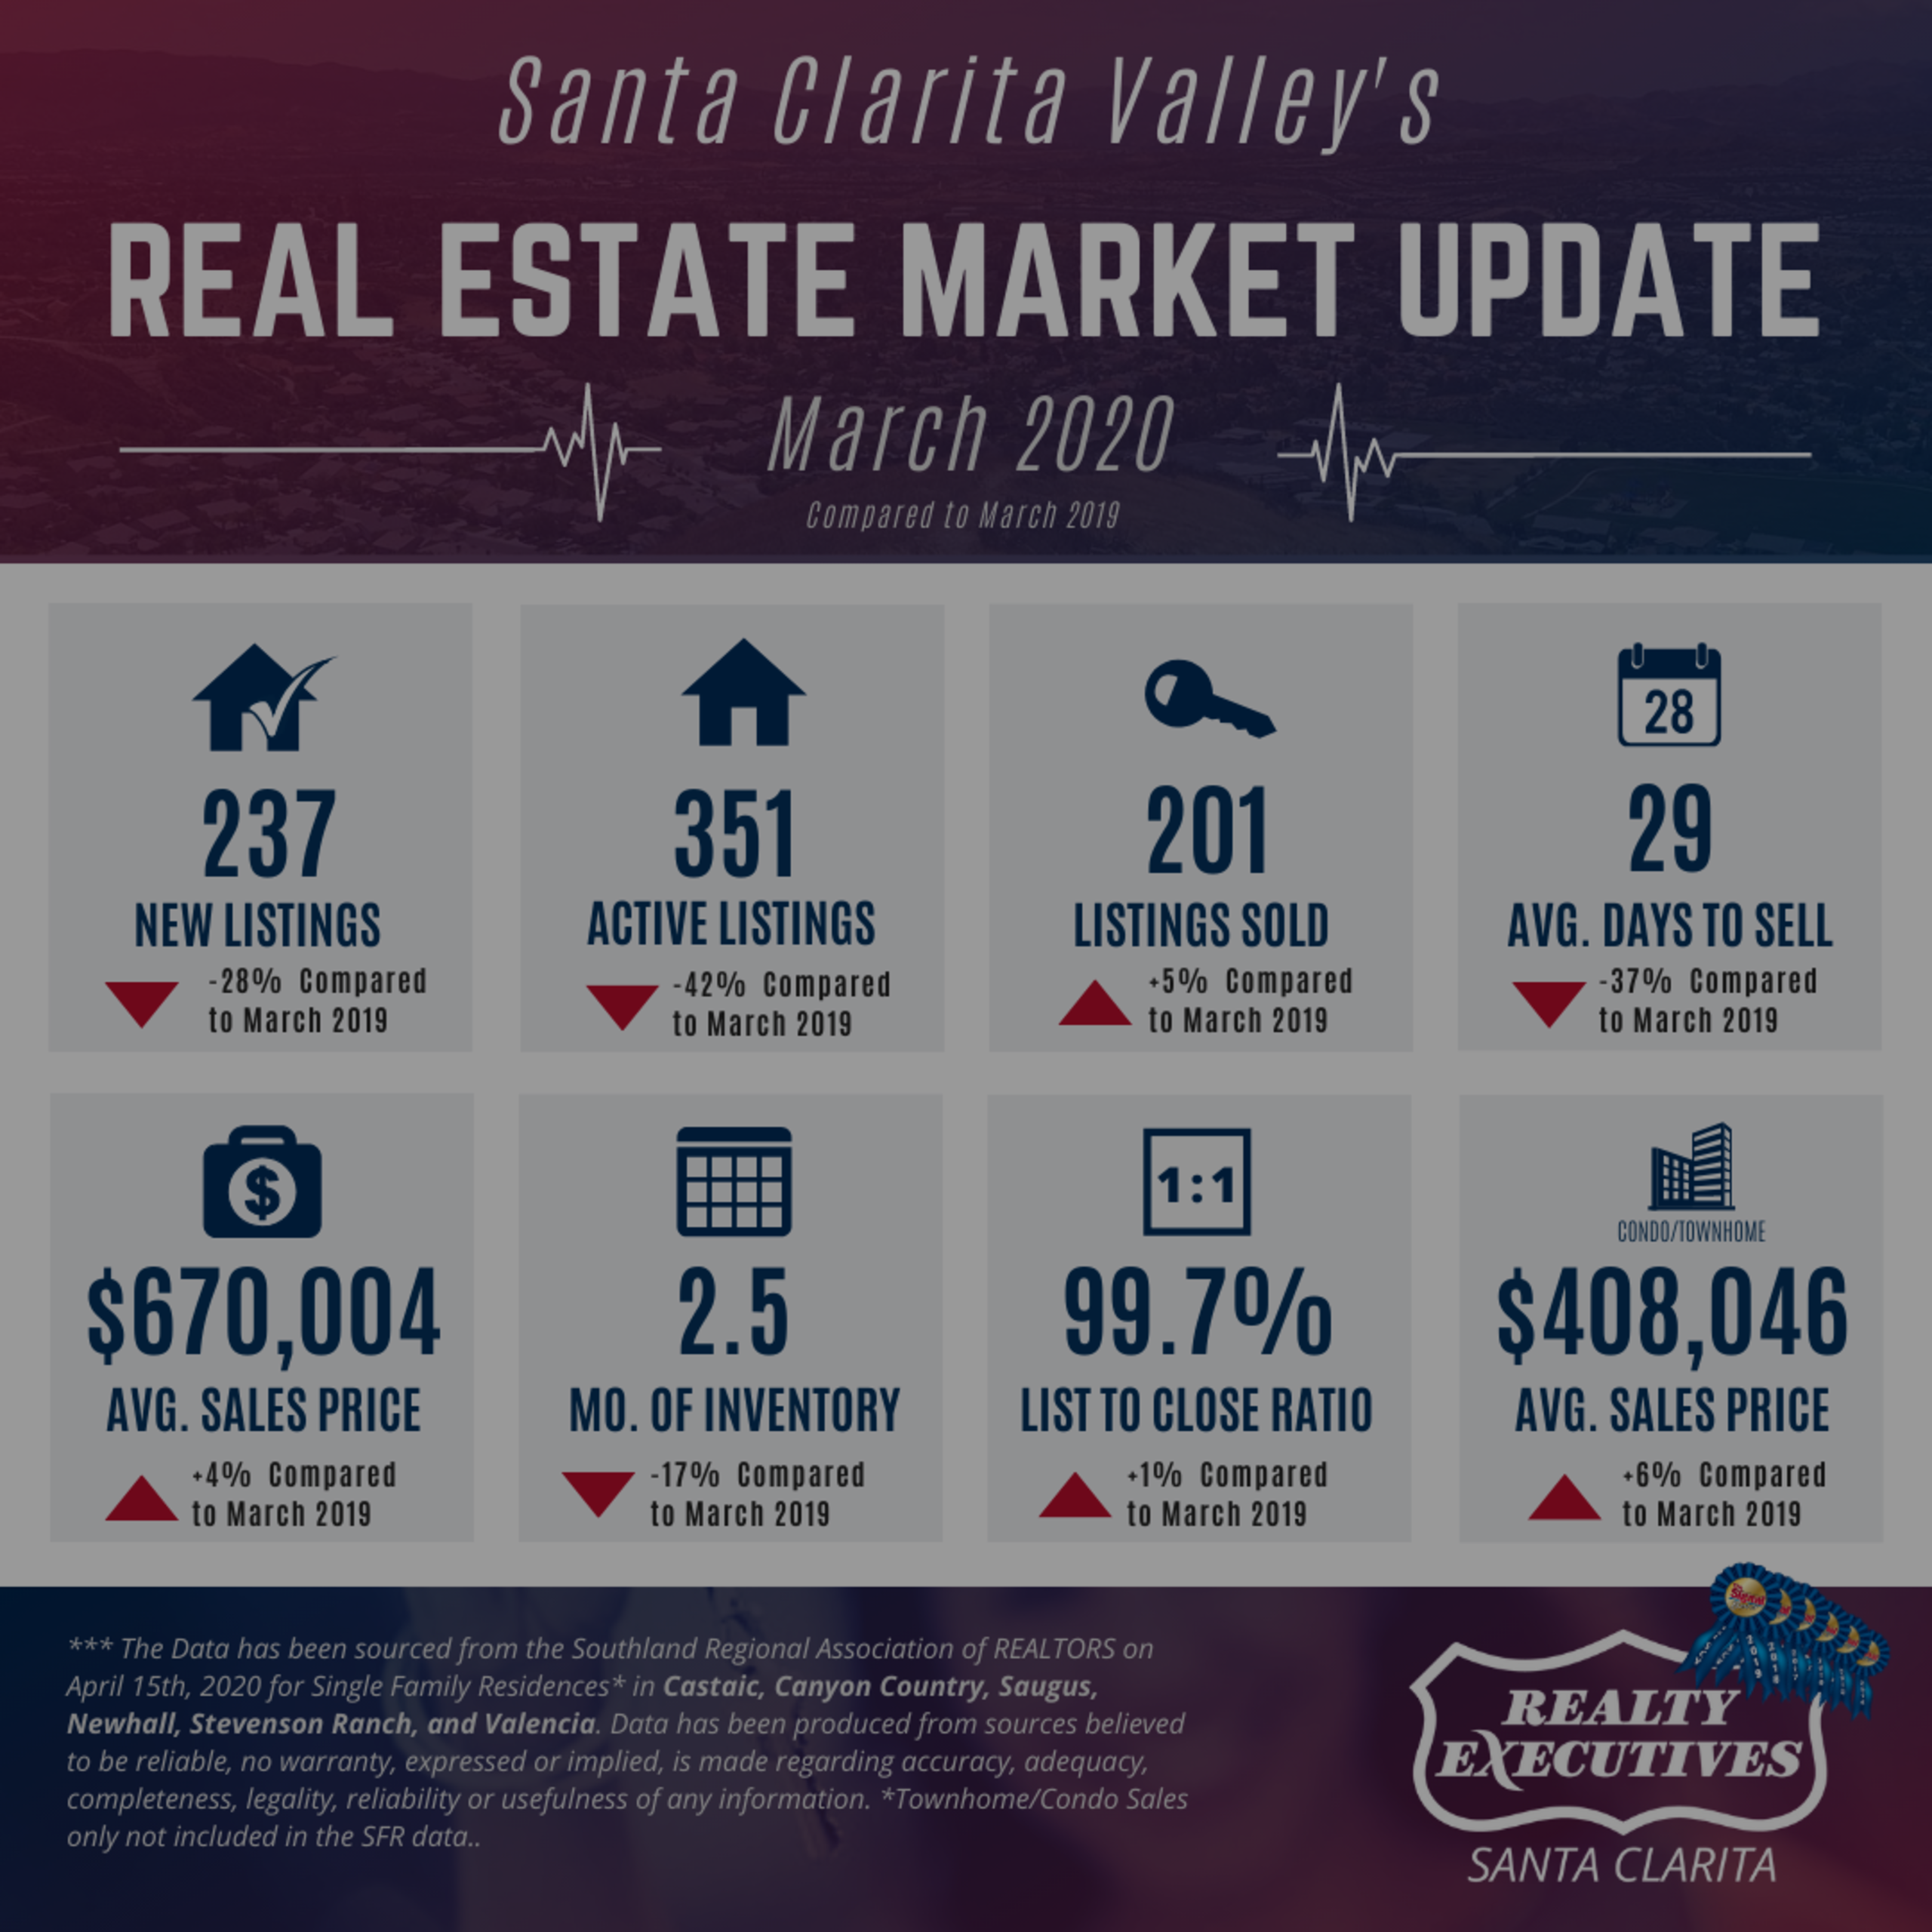 March 2020: Santa Clarita Valley Real Estate Market Update